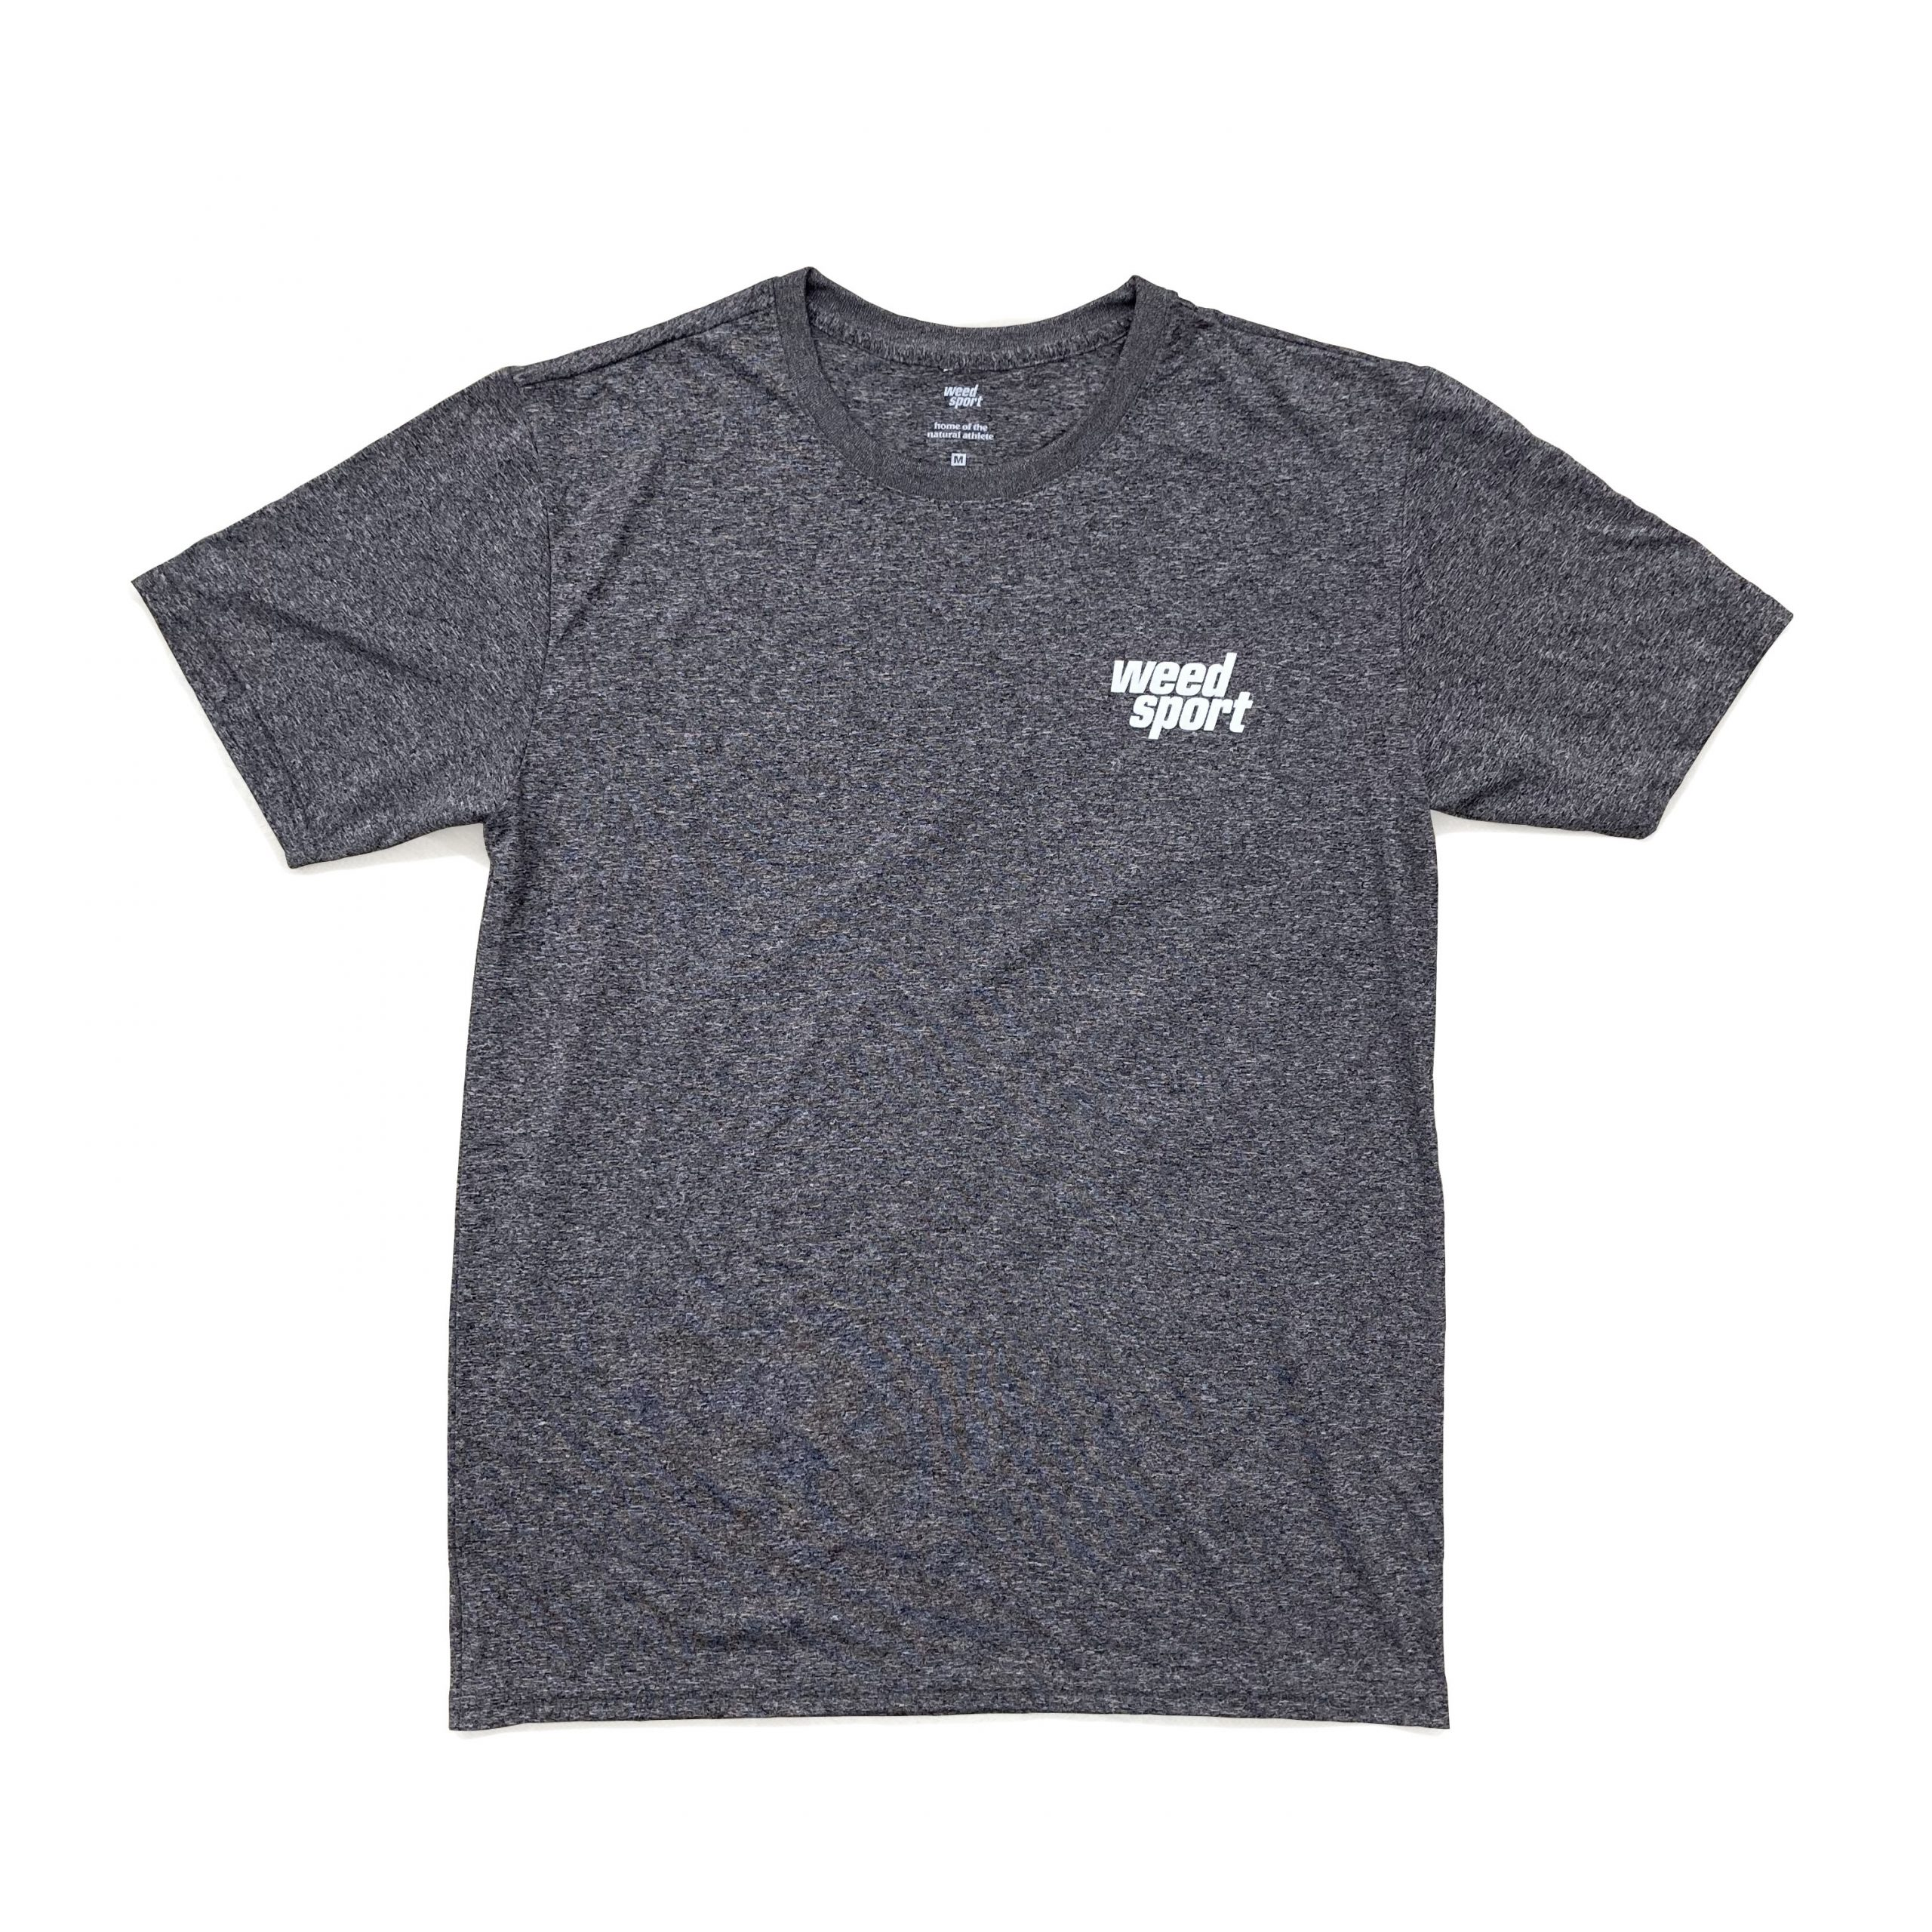 Performance Workout Tee (Charcoal)